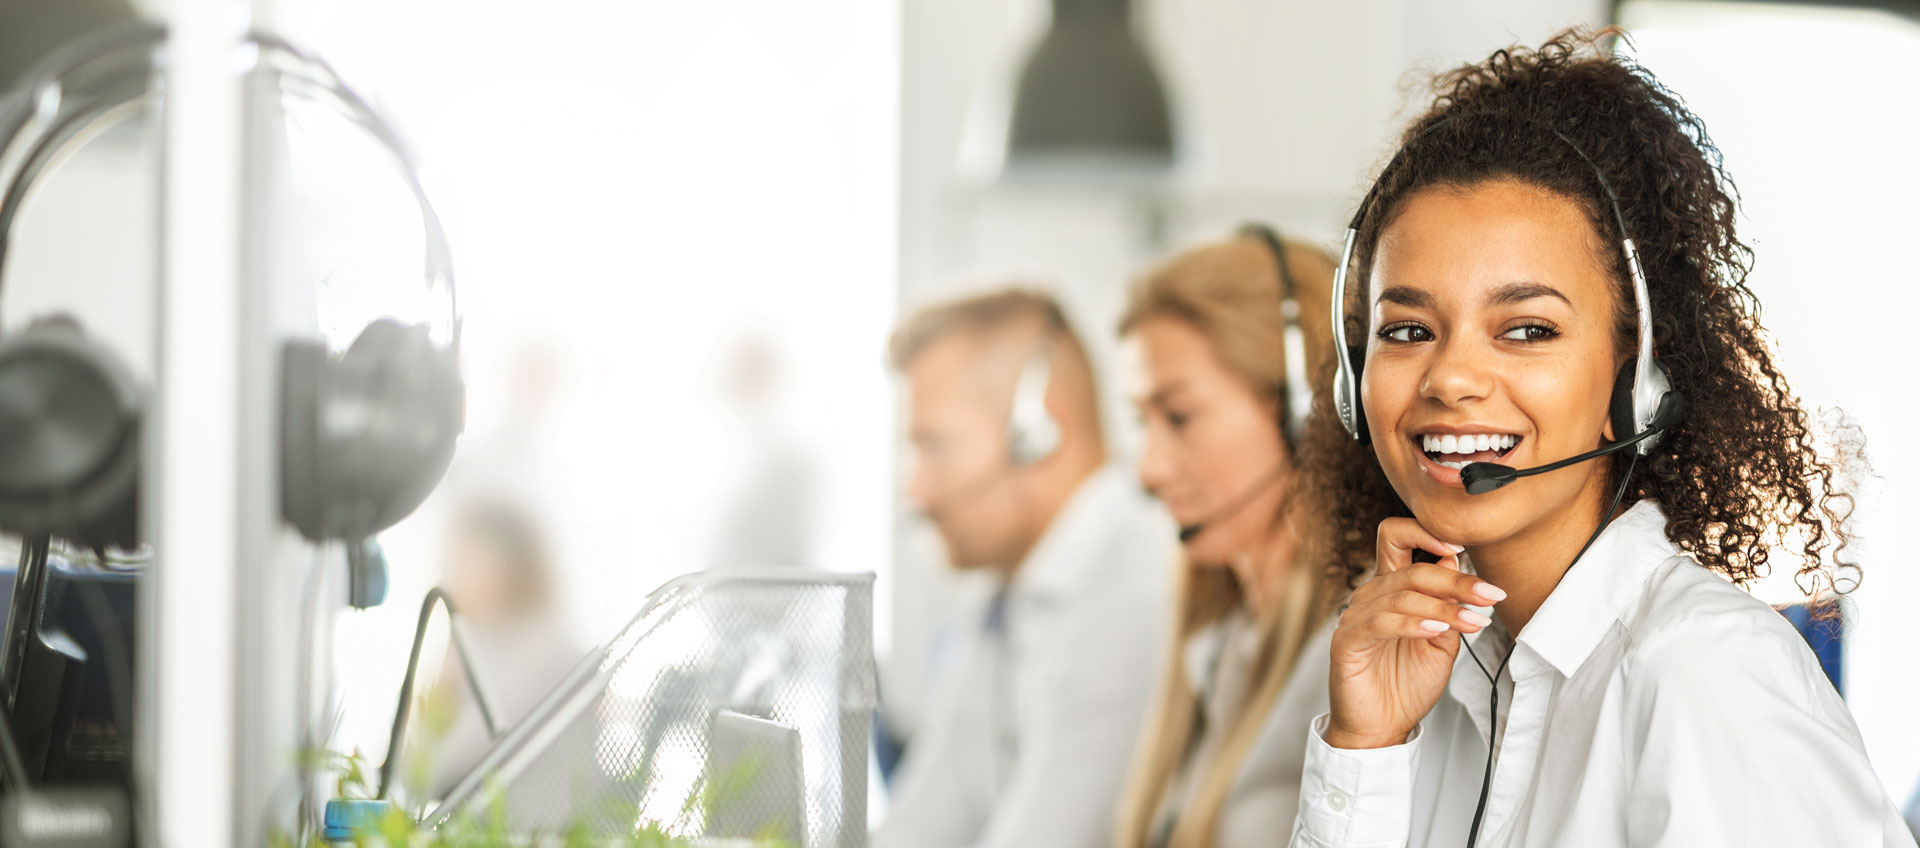 Photo of support staff manning phone system